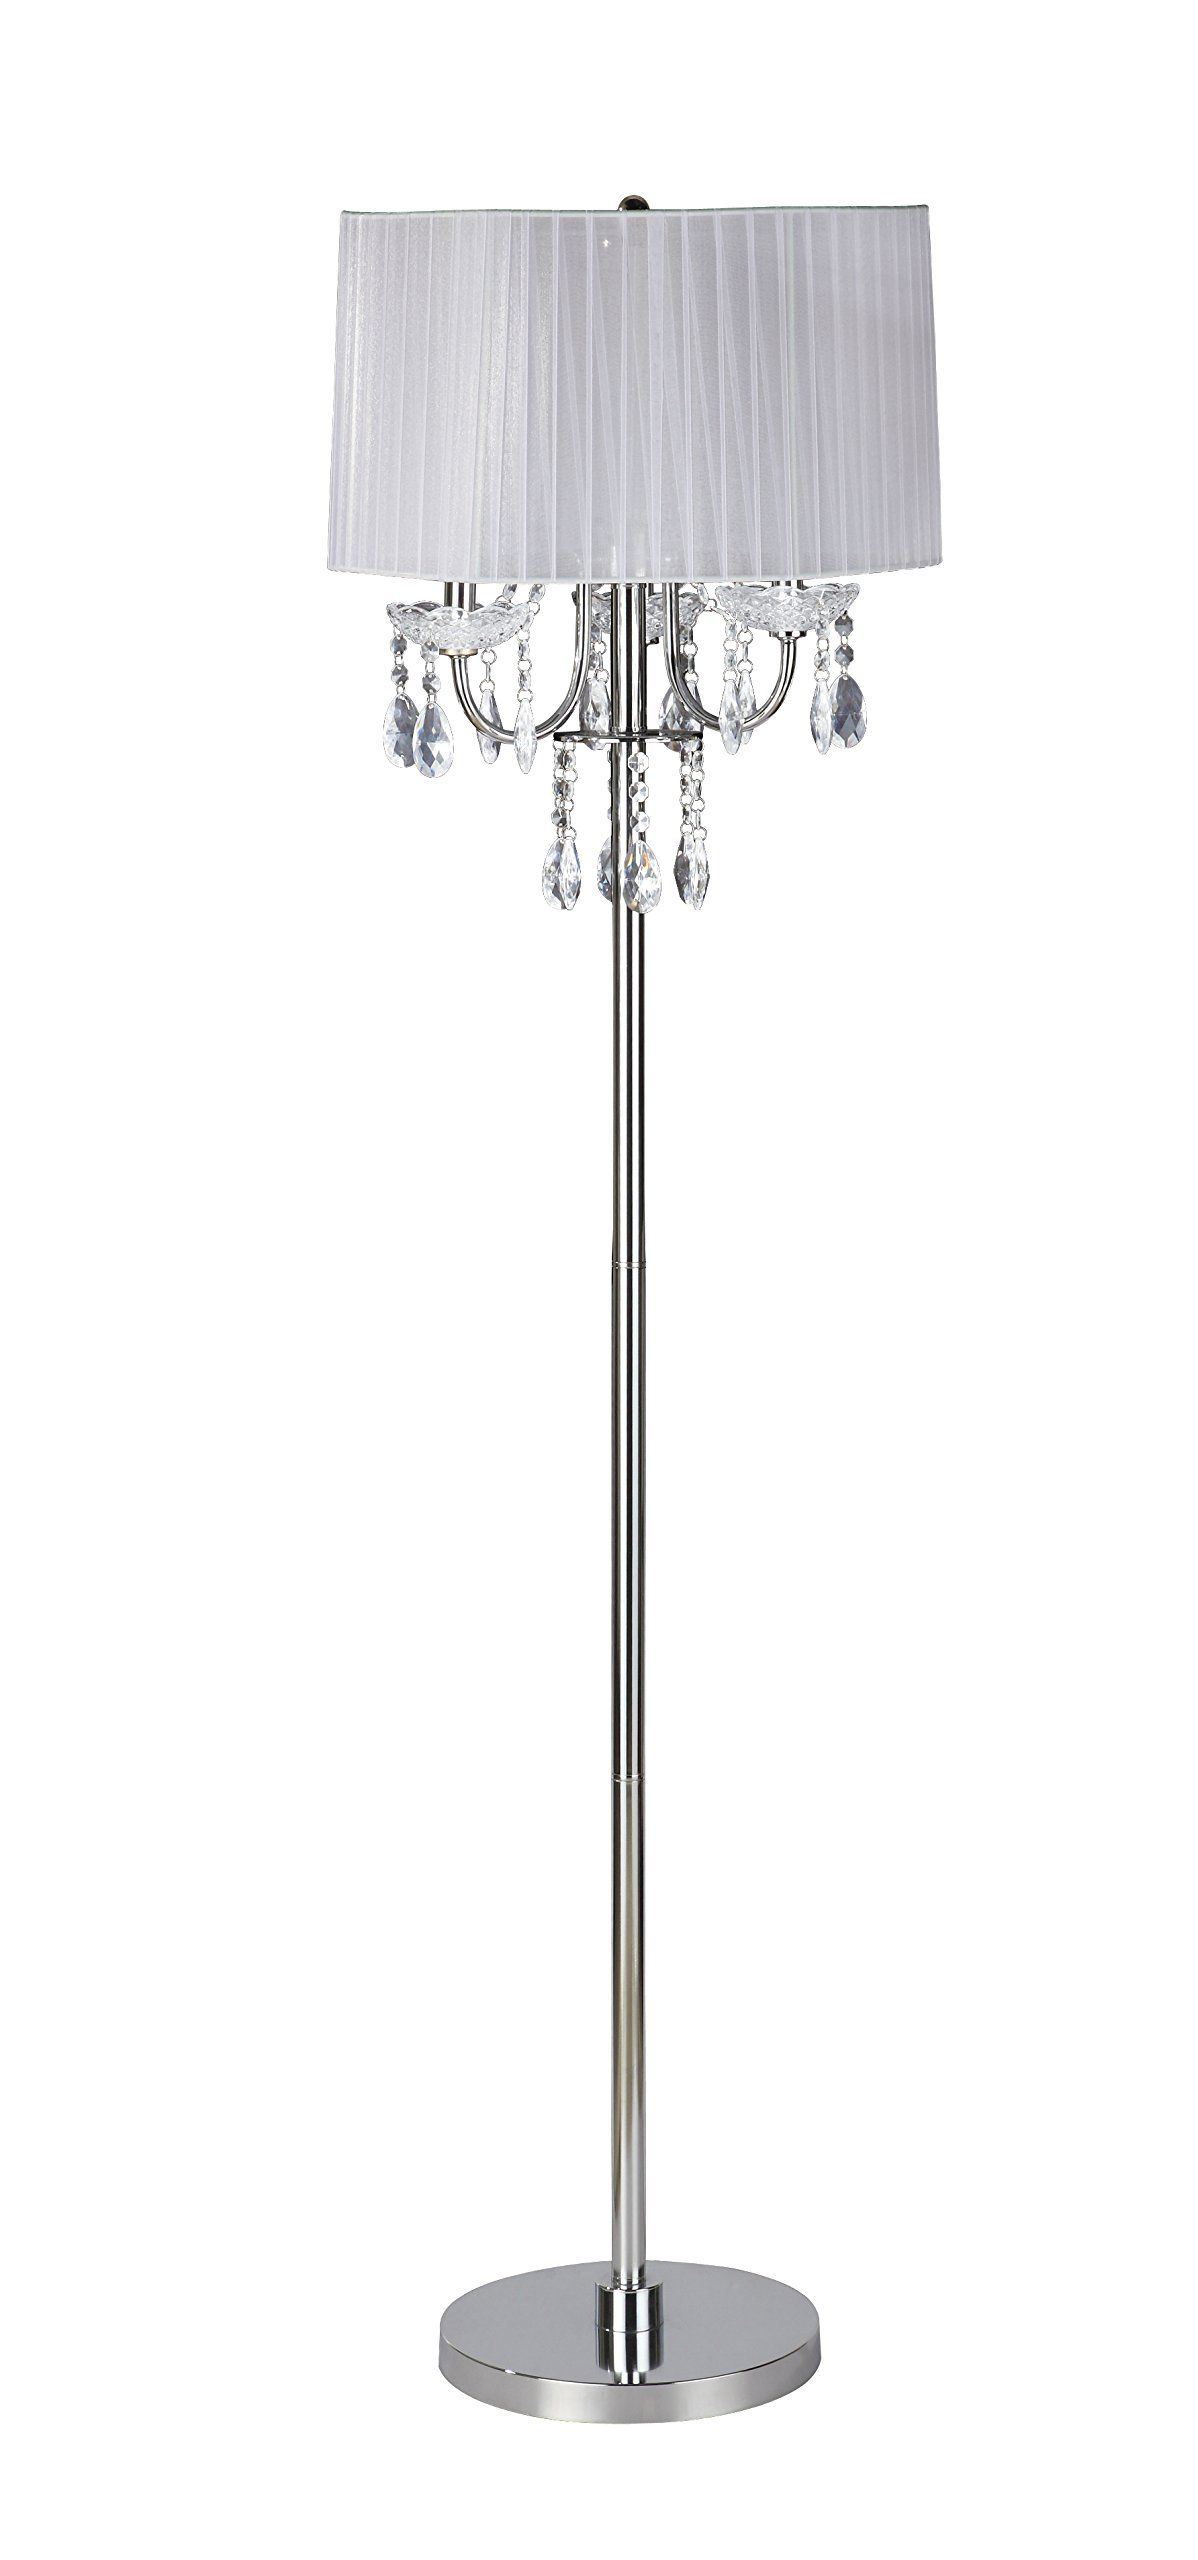 Wh wholesale vintage lead crystal table lamp buy cheap - Sh Lighting 6733f Wh Crystal Inspired 3 Bulb Floor Lamp 62 5 H